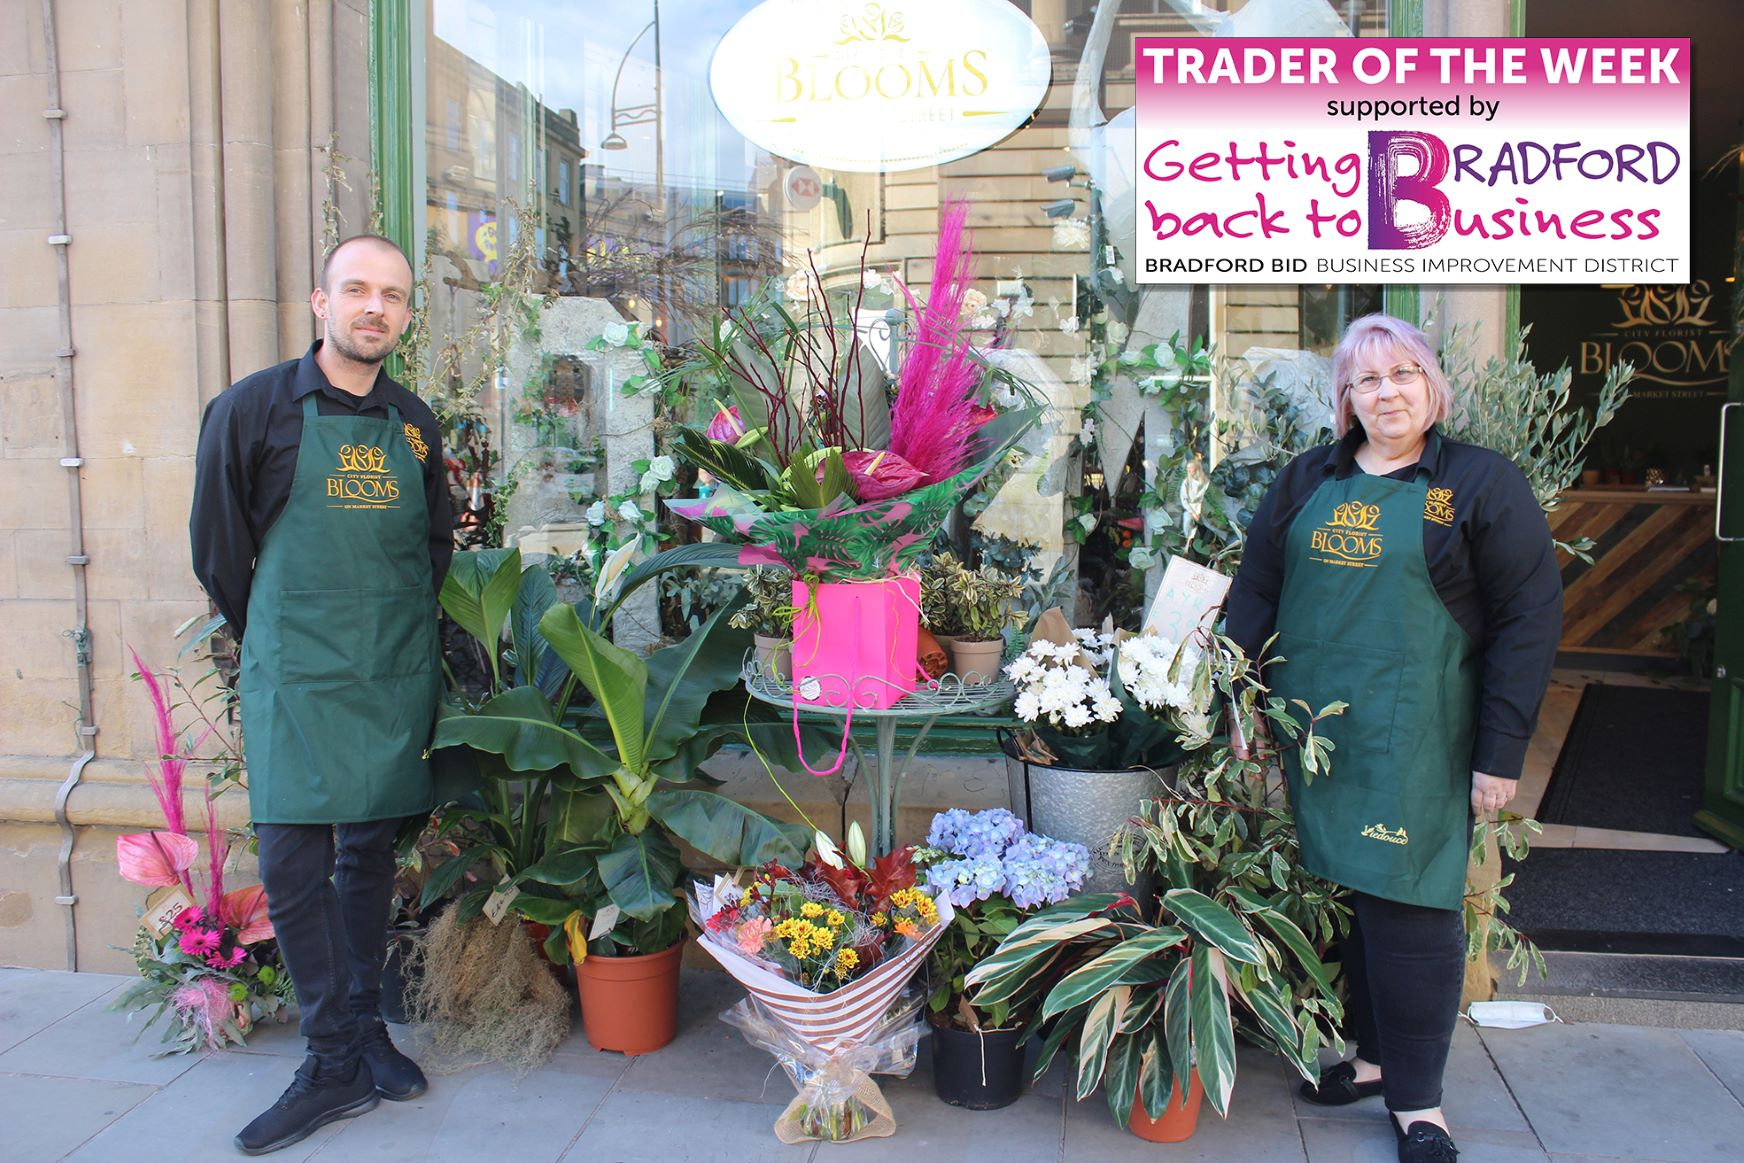 Trader of the Week – Blooms on Market Street